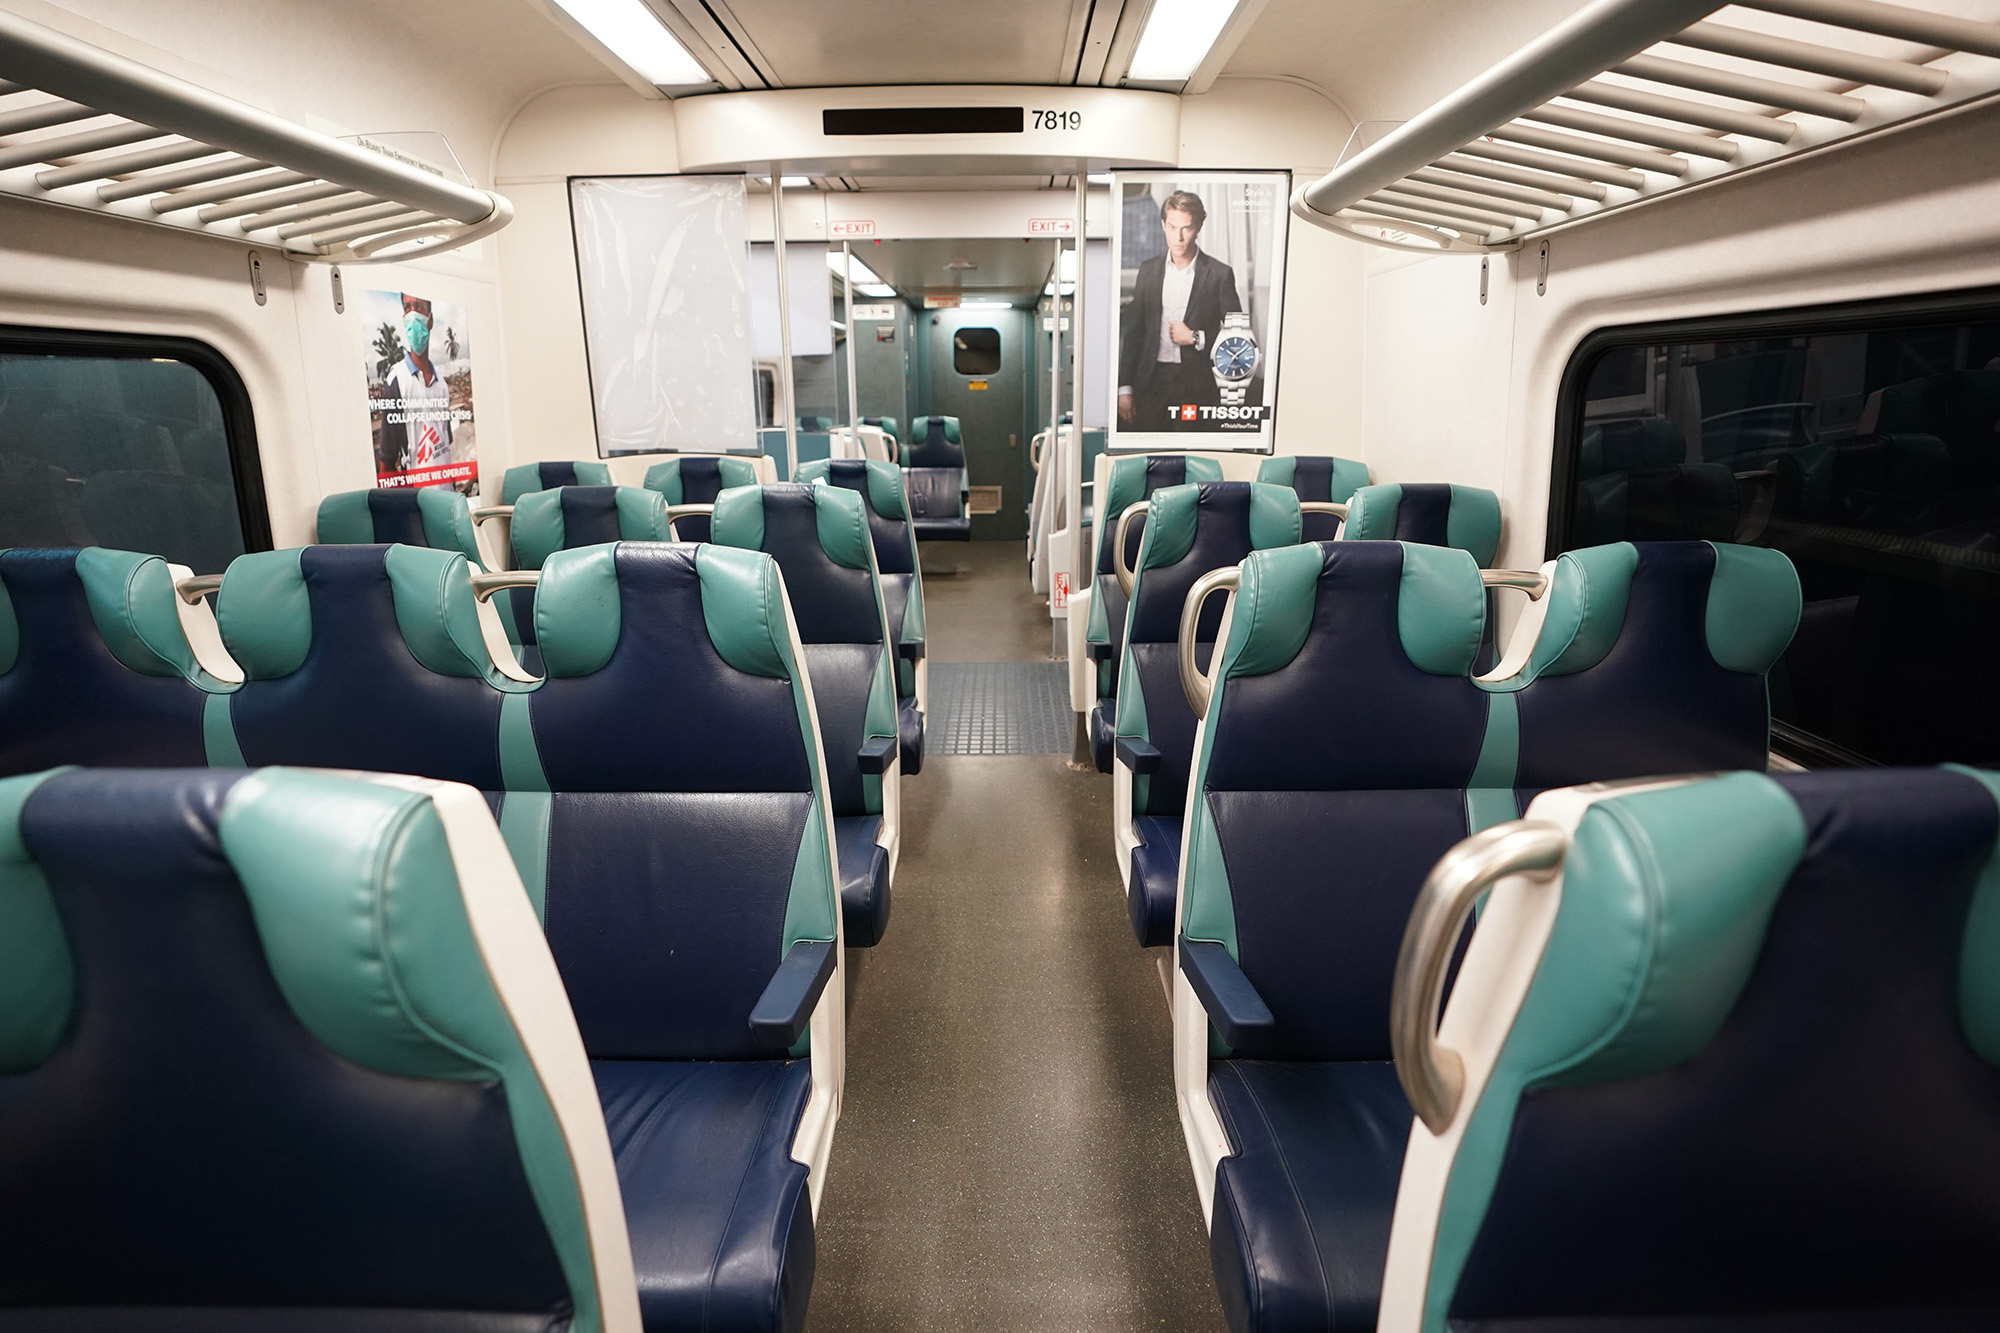 A general view of the interior of a LIRR commuter train as seen at Penn Station in New York, NY on August 6, 2020.